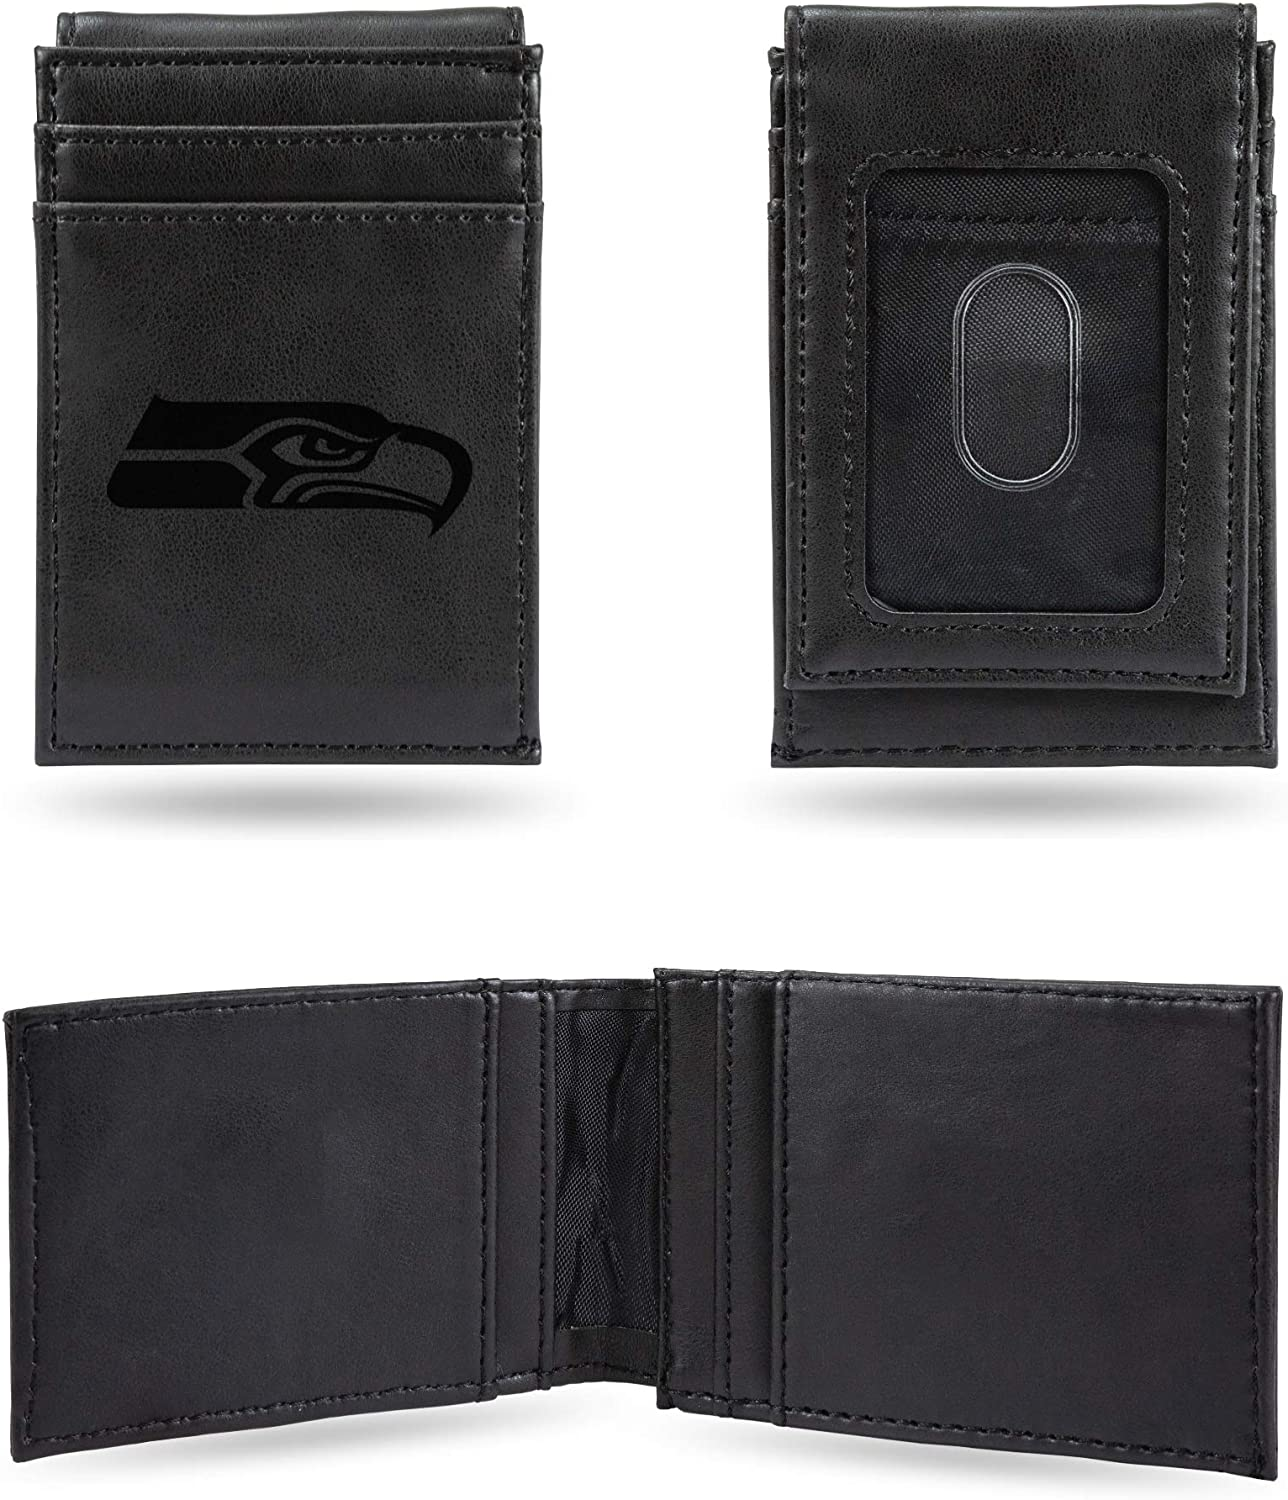 Seattle Seahawks NFL Rico Industries  Laser Engraved Front Pocket Wallet